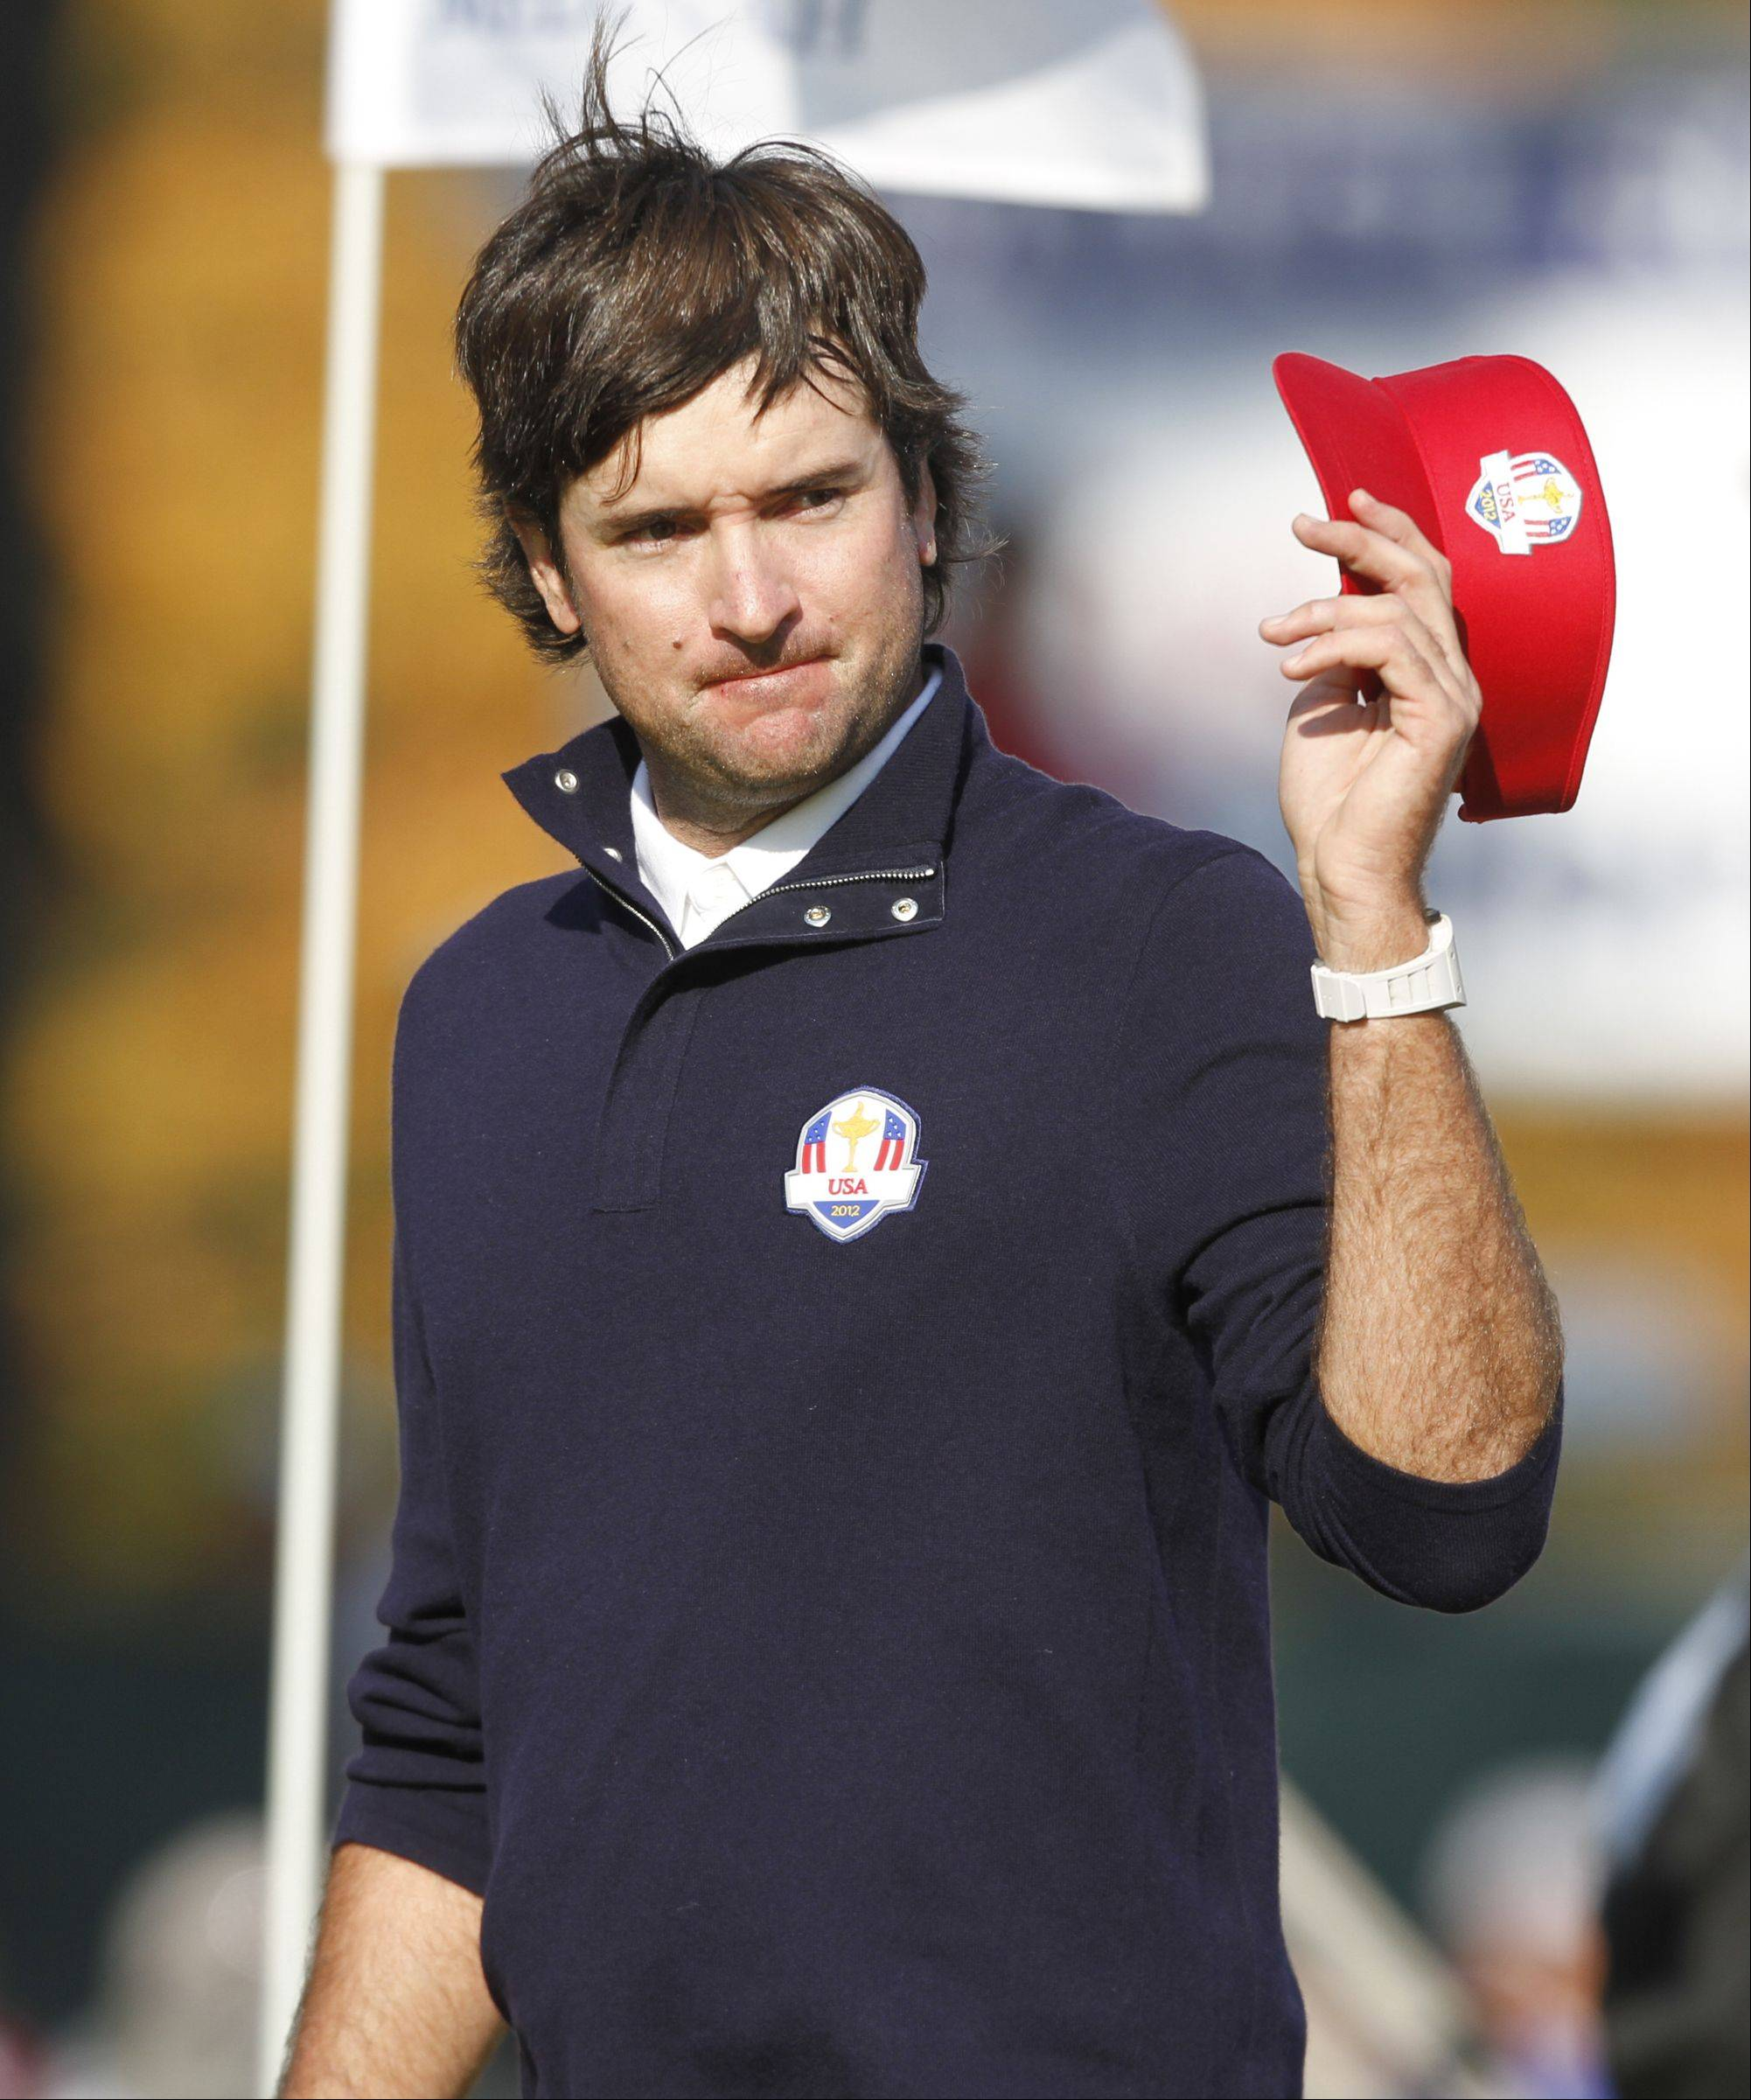 Bubba Watosn on the 14th hole after winning his afternoon match during the 2012 Ryder Cup at Medinah Country Club.